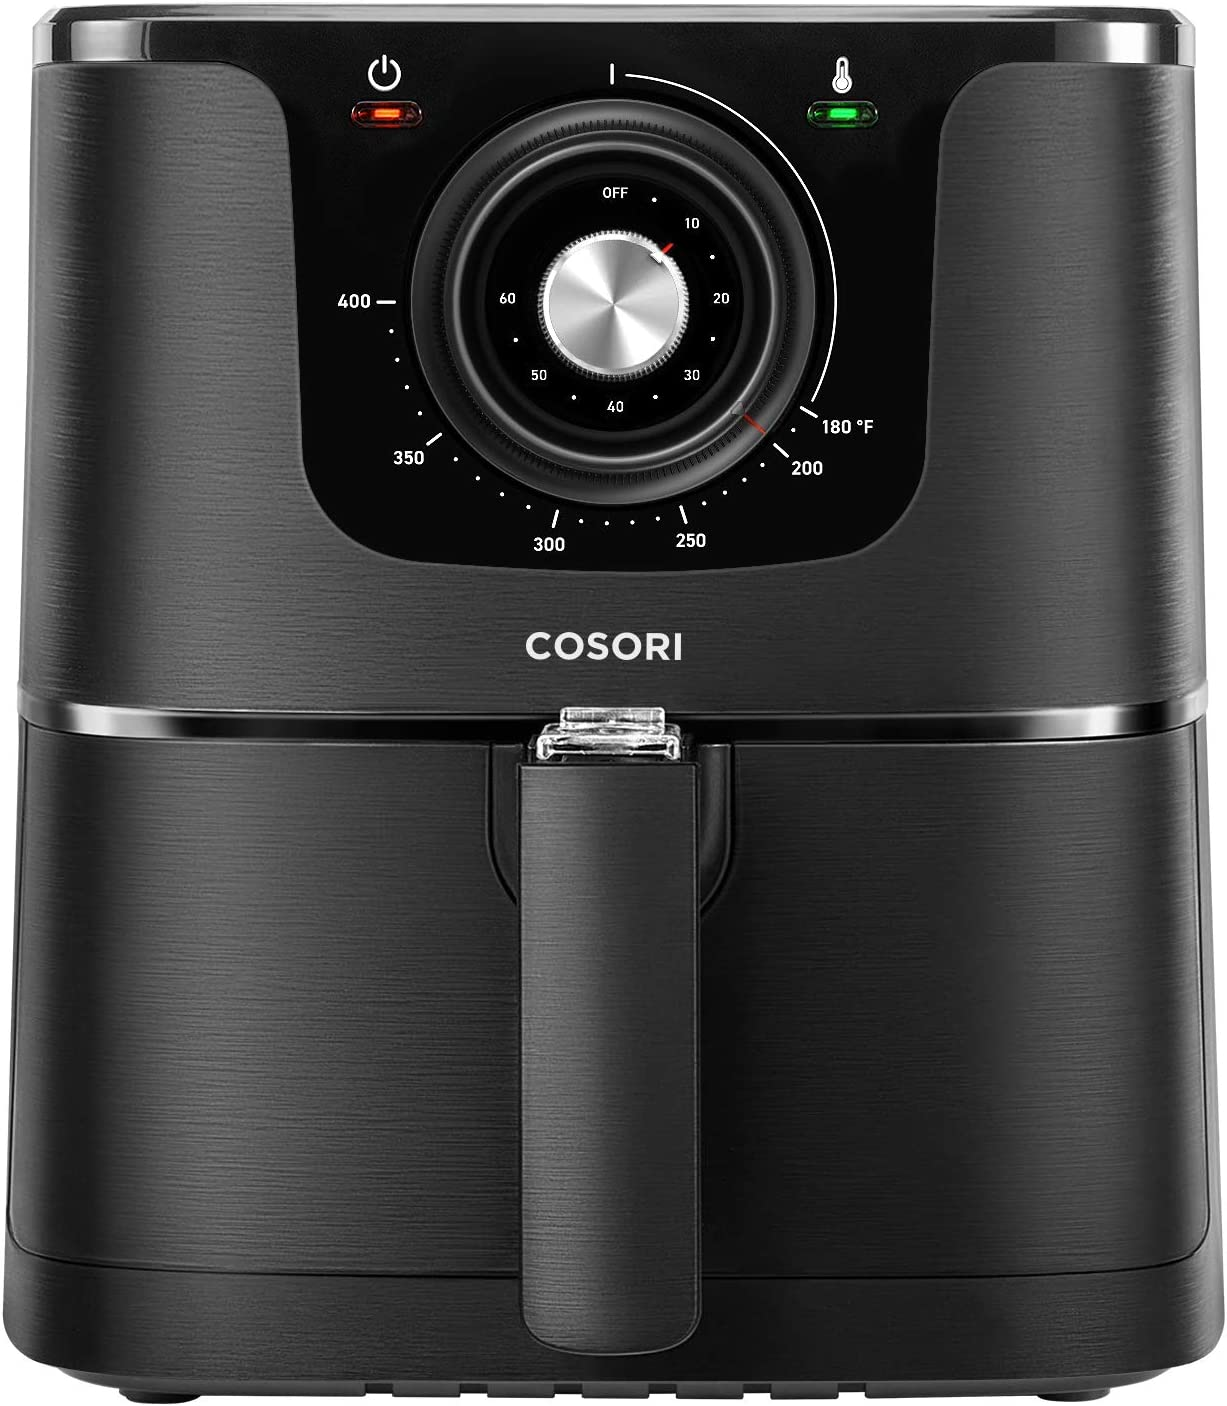 COSORI Air Fryer, 3.7-Quart, 1500-Watt Electric Hot Air Fryer Oven Oilless Cooker With Deluxe Temperature Knob Control, Nonstick Basket,Recipe Cookbook Included,ETL Listed